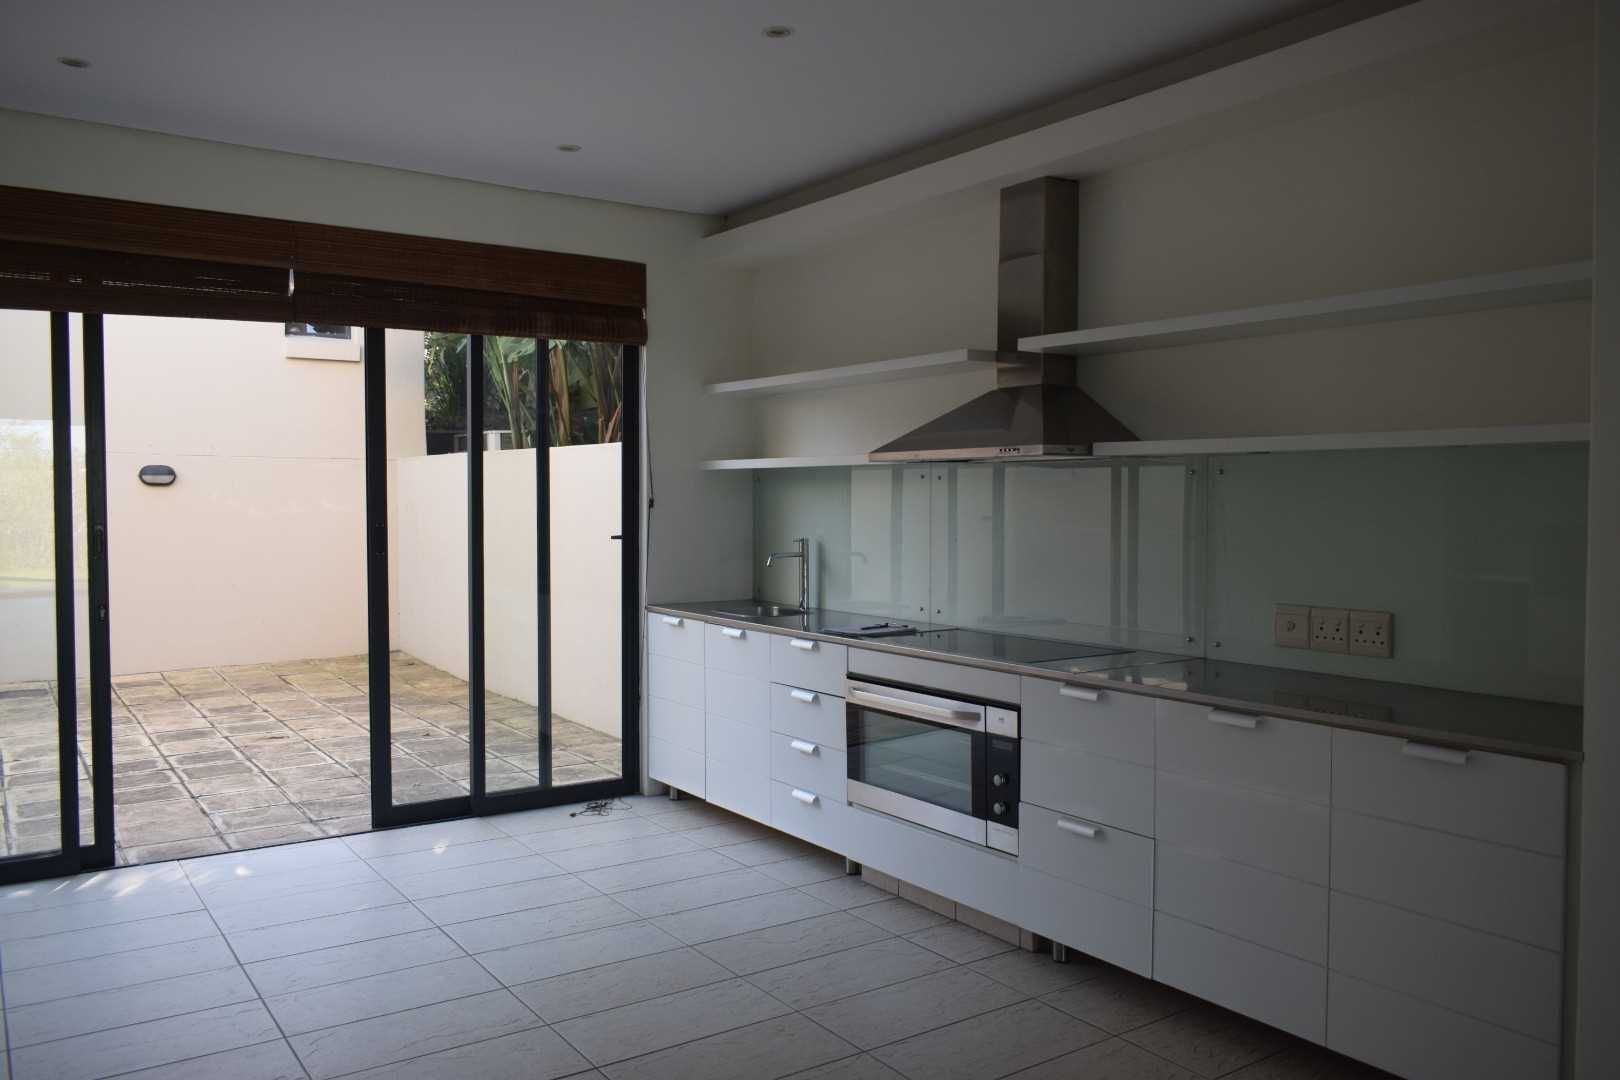 Kitchen cooking area with enclosed courtyard outside